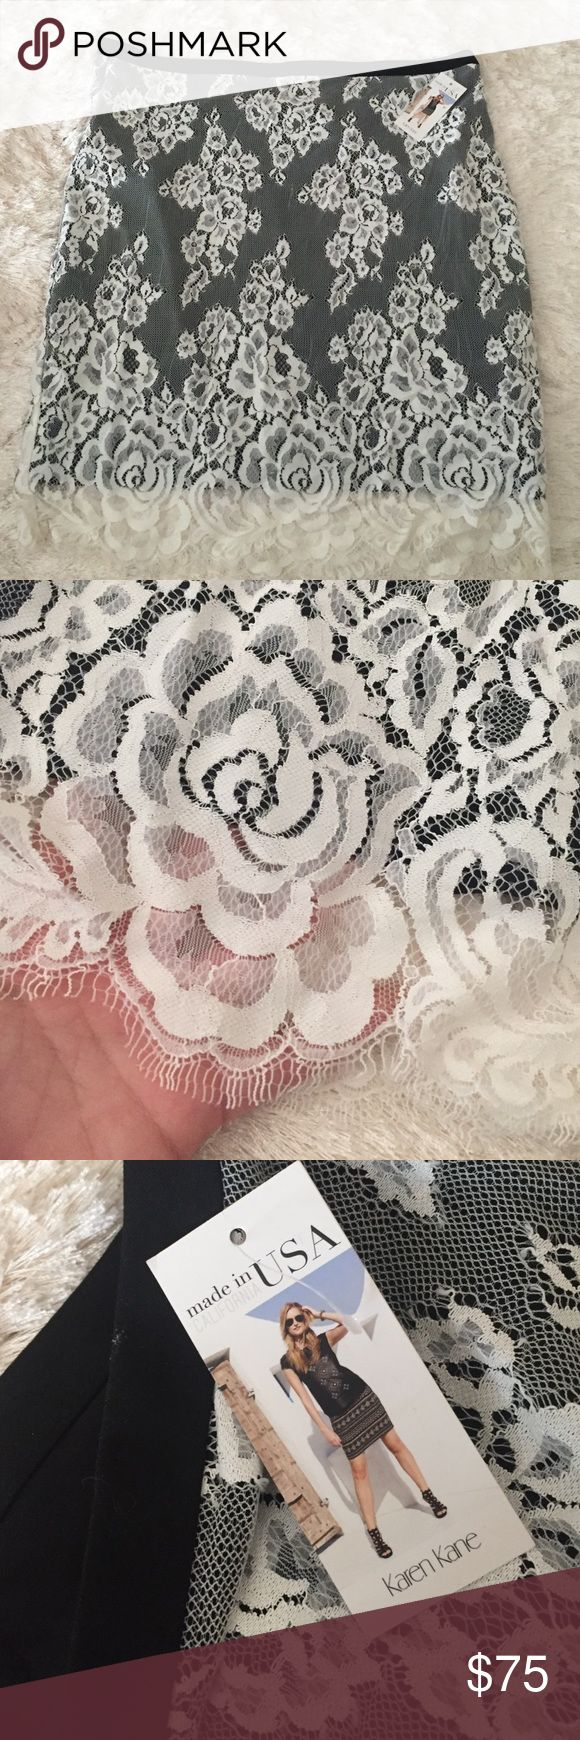 Karen Kane skirt black and white lace Never worn karen Kane skirt size xl black and white lace Karen Kane Skirts